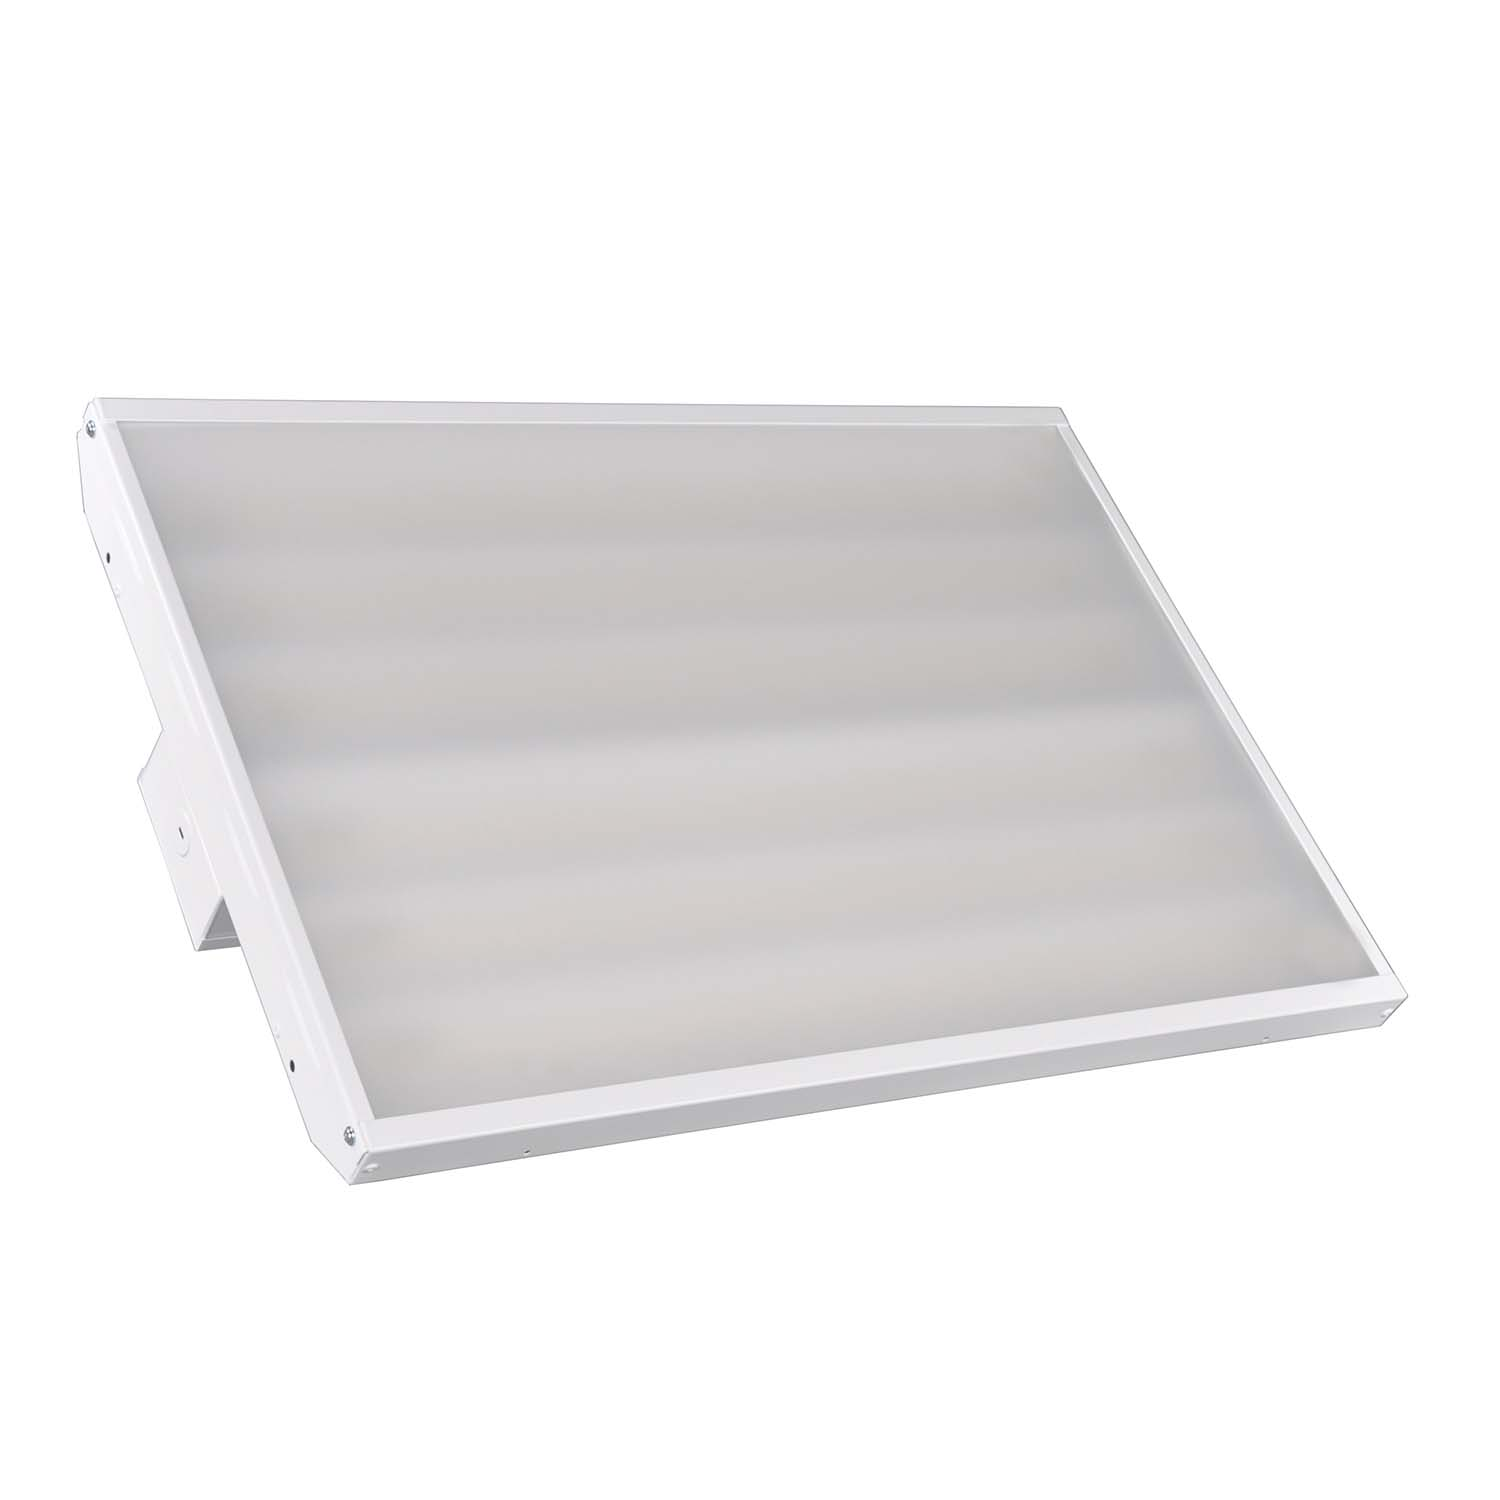 LHB2/161/850/UNV/LED2 99650 LINEAR LED HIGH BAY 120-277V, 161W, 5000K, 0-10V DIMMING, SERIES II